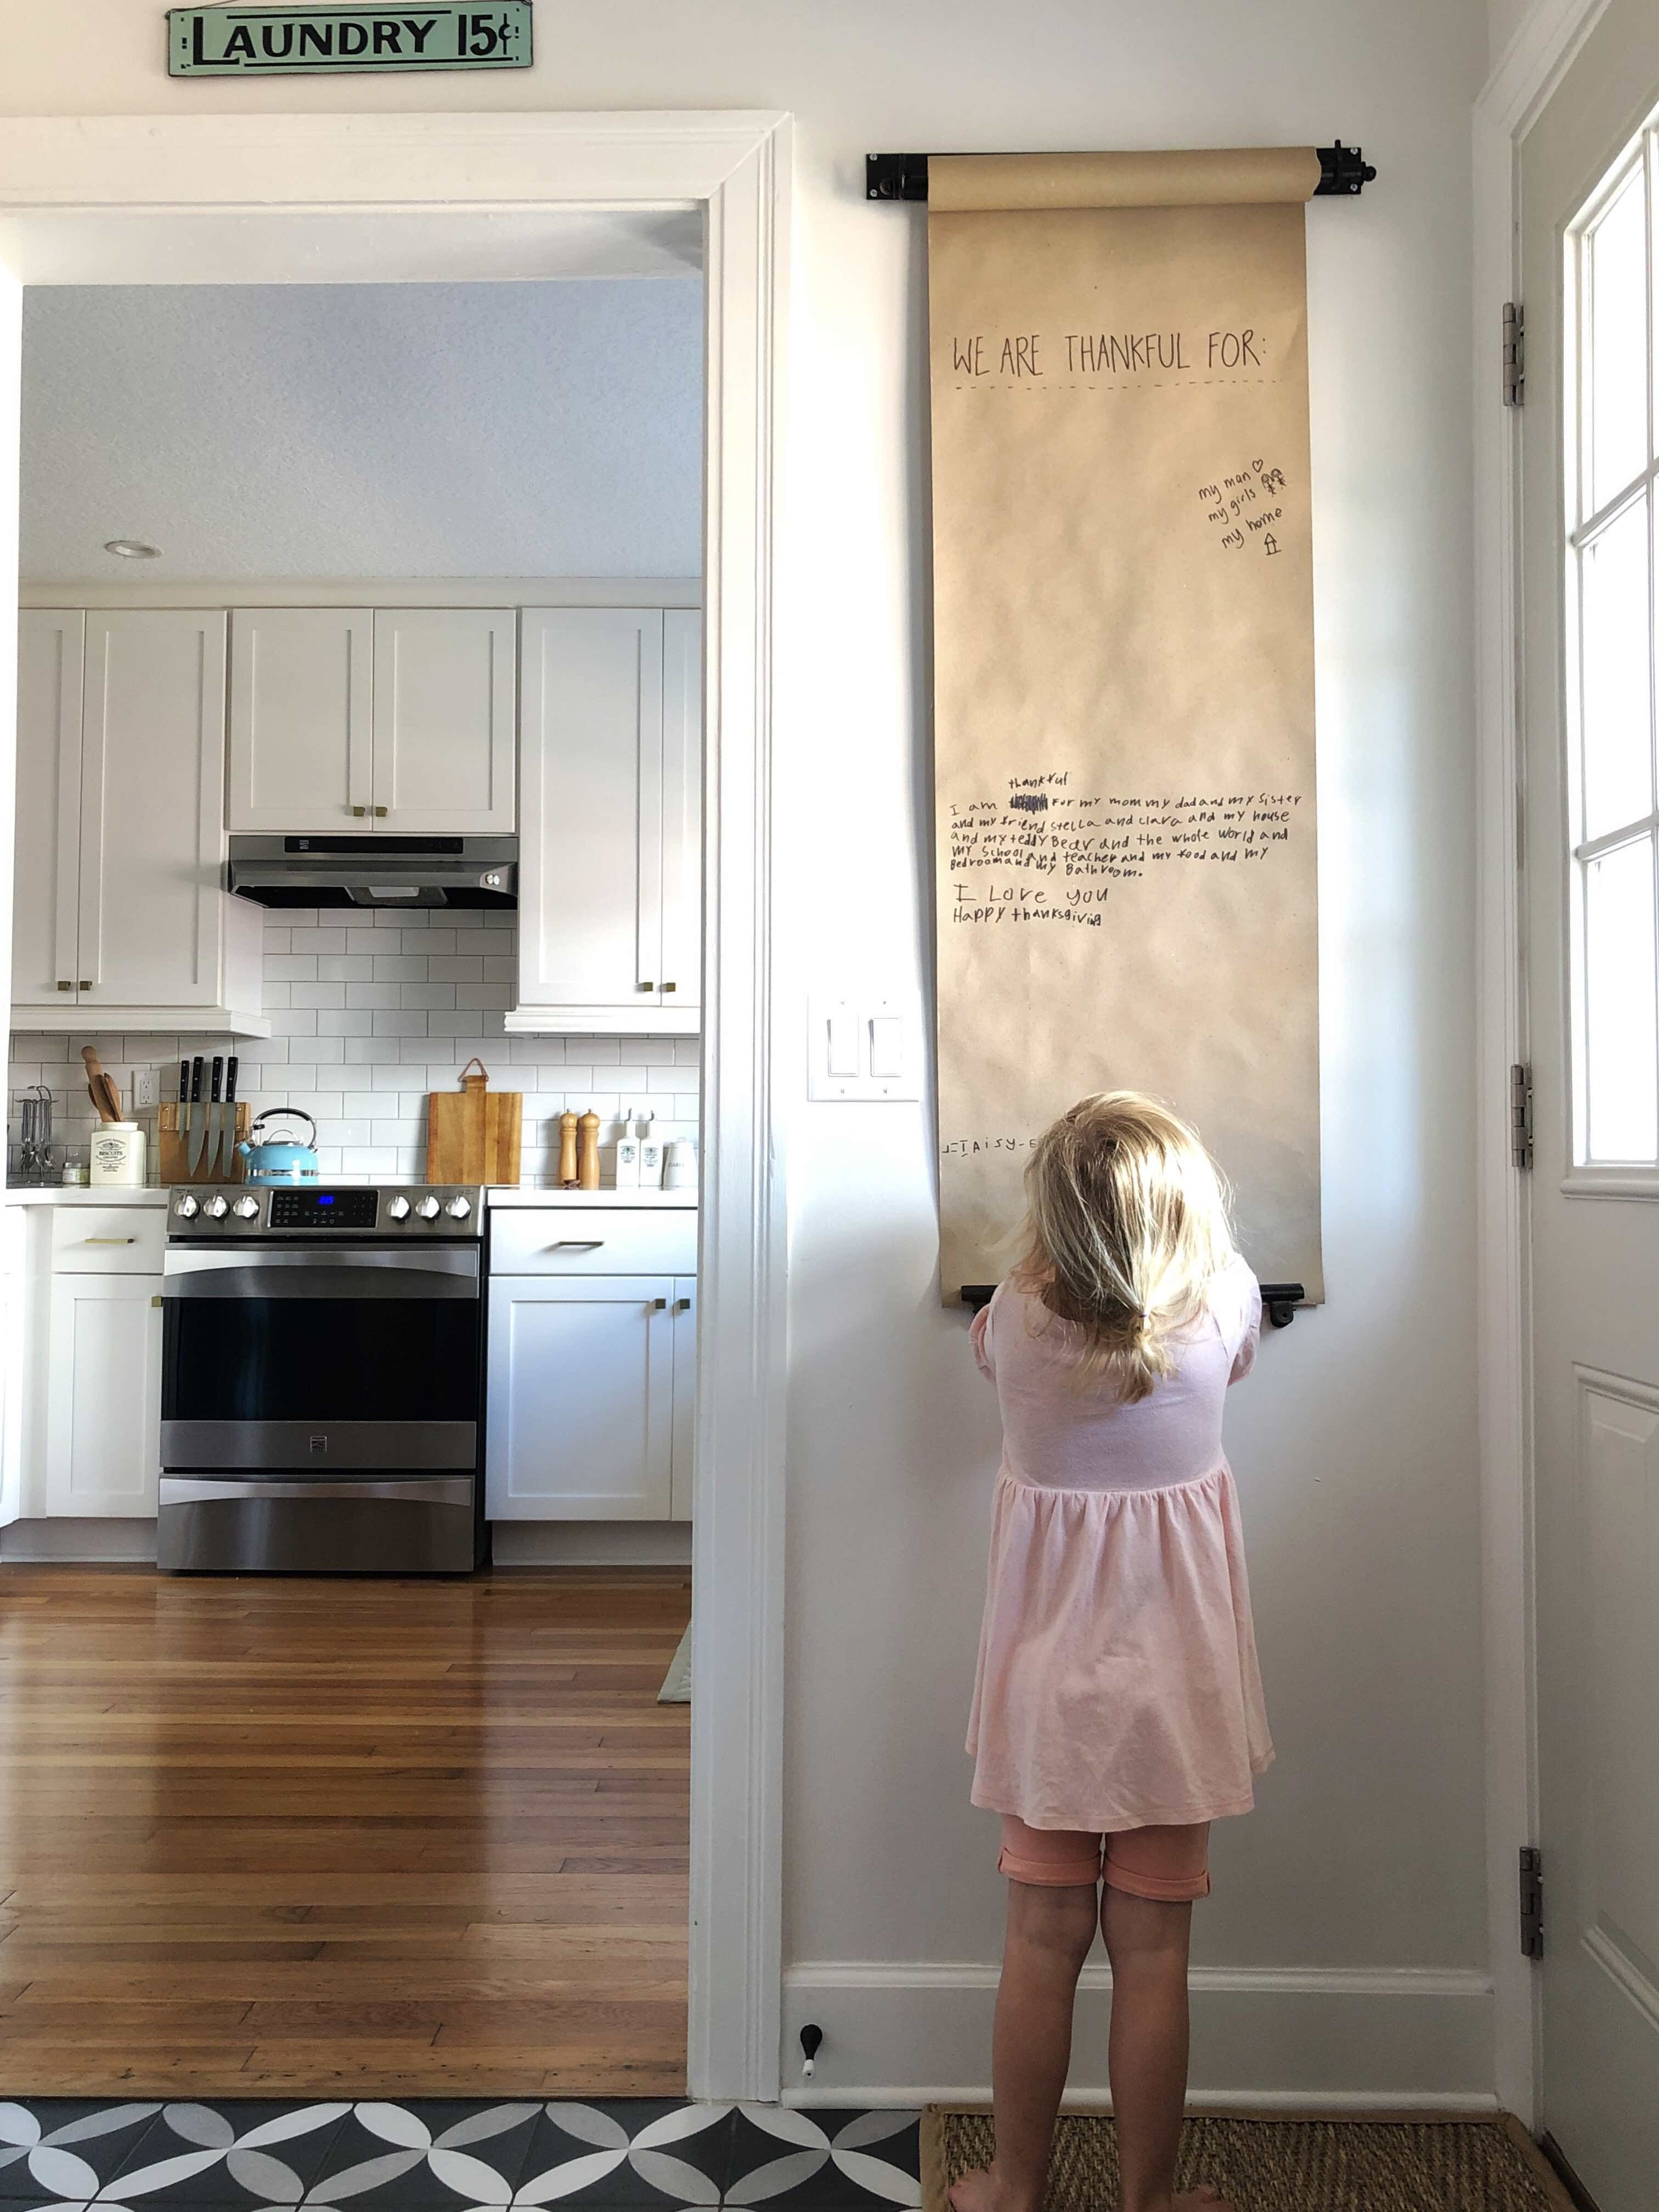 An Easy And Inexpensive Way To Cover Up An Electrical Panel Cover Electrical Panel Electrical Panel Hide Electrical Panel